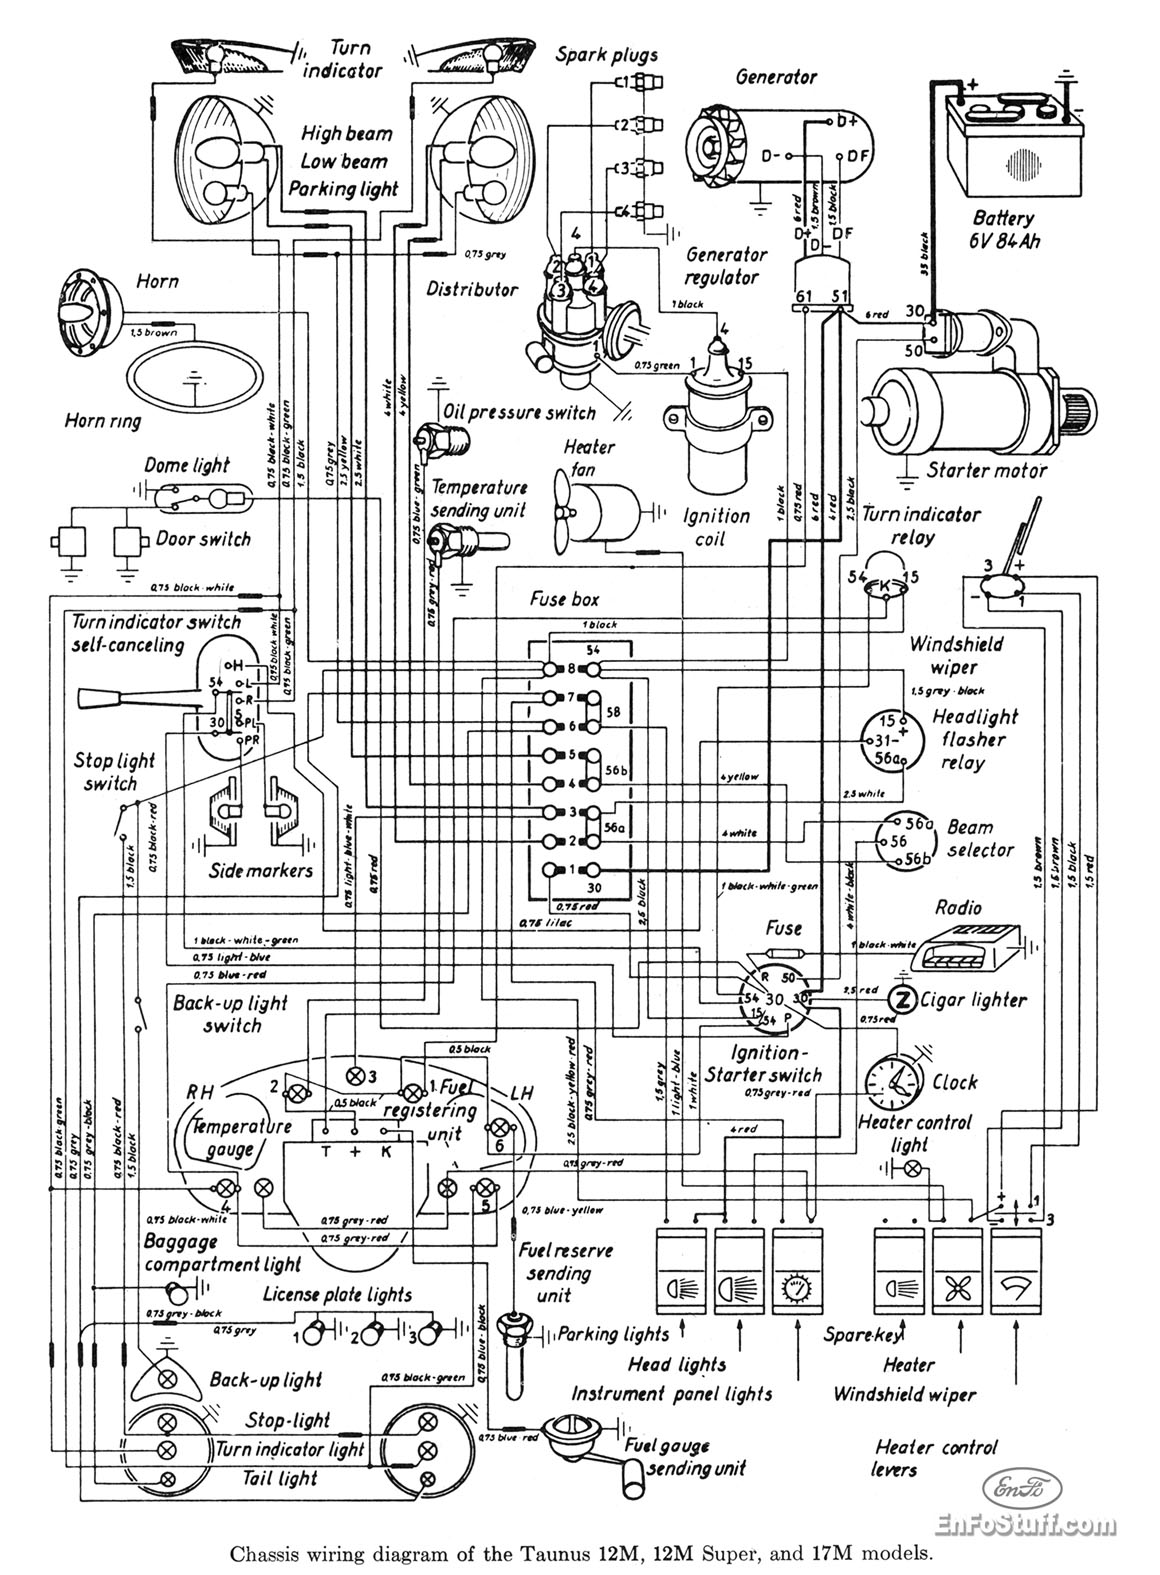 ford taunus 12m 17m wiring diagram citroen c4 wiring diagram citroen c4 stereo wiring diagram  at soozxer.org